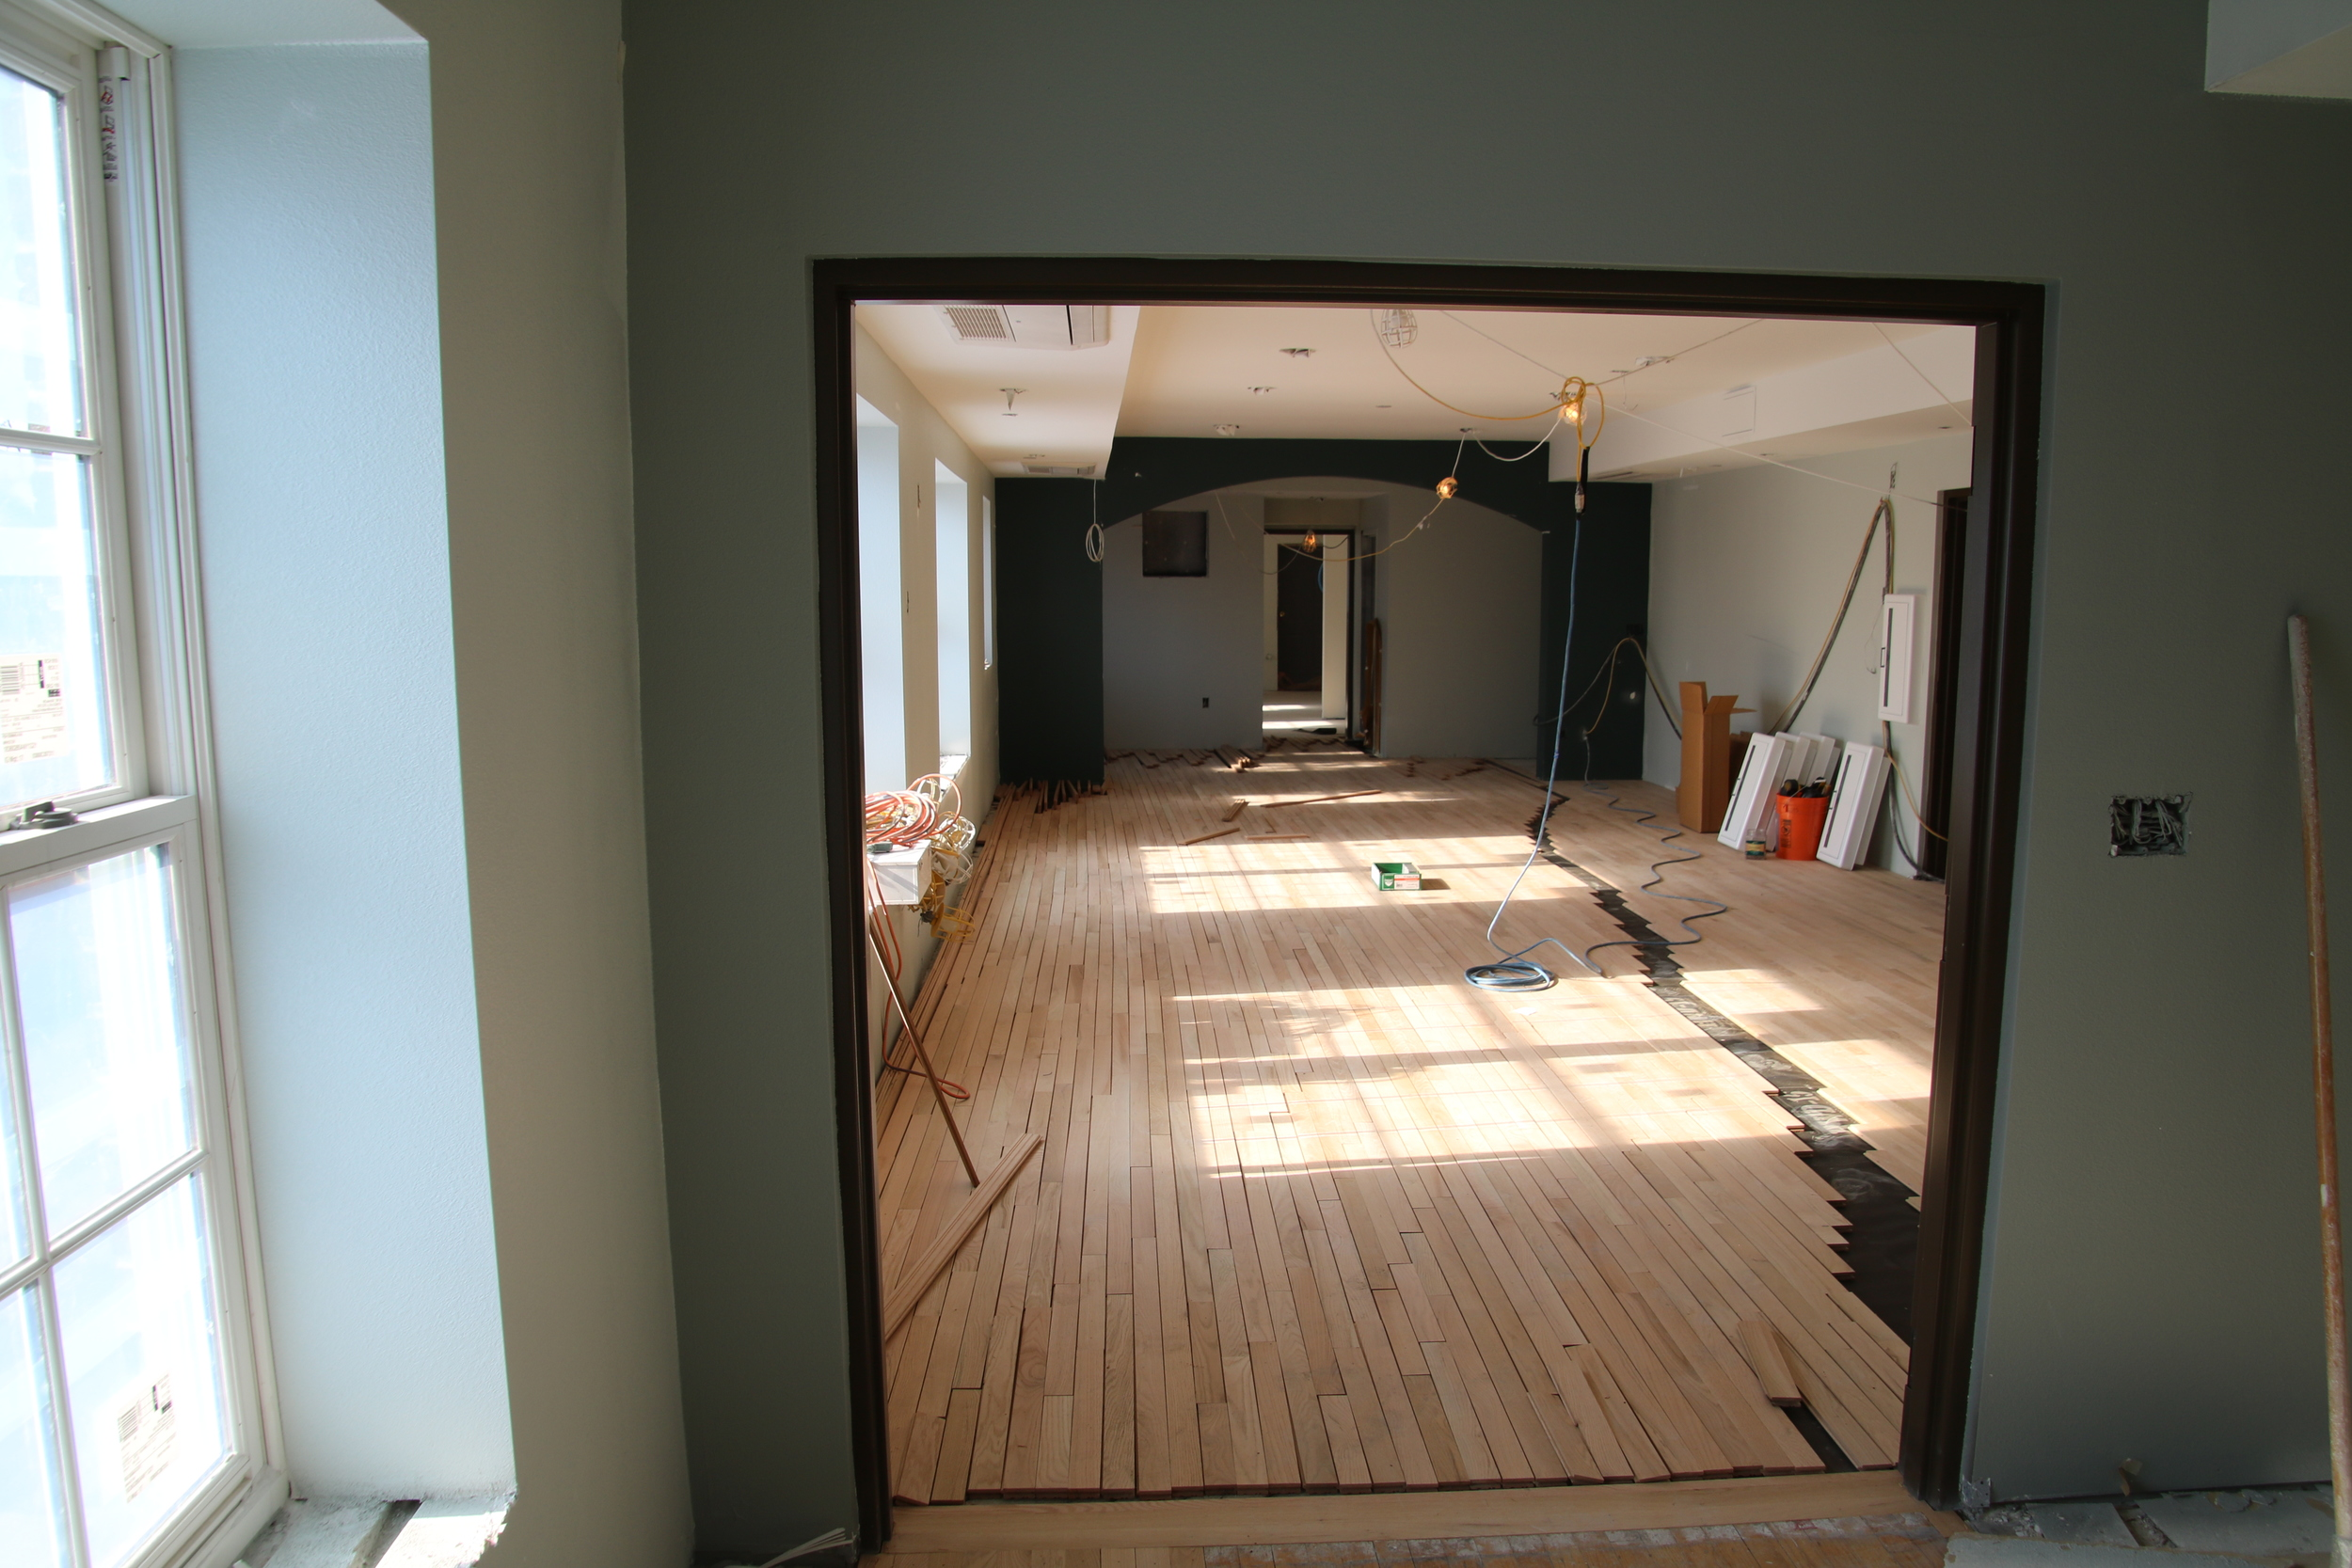 2016-01-19 looking into Dining Room from Living Room.JPG